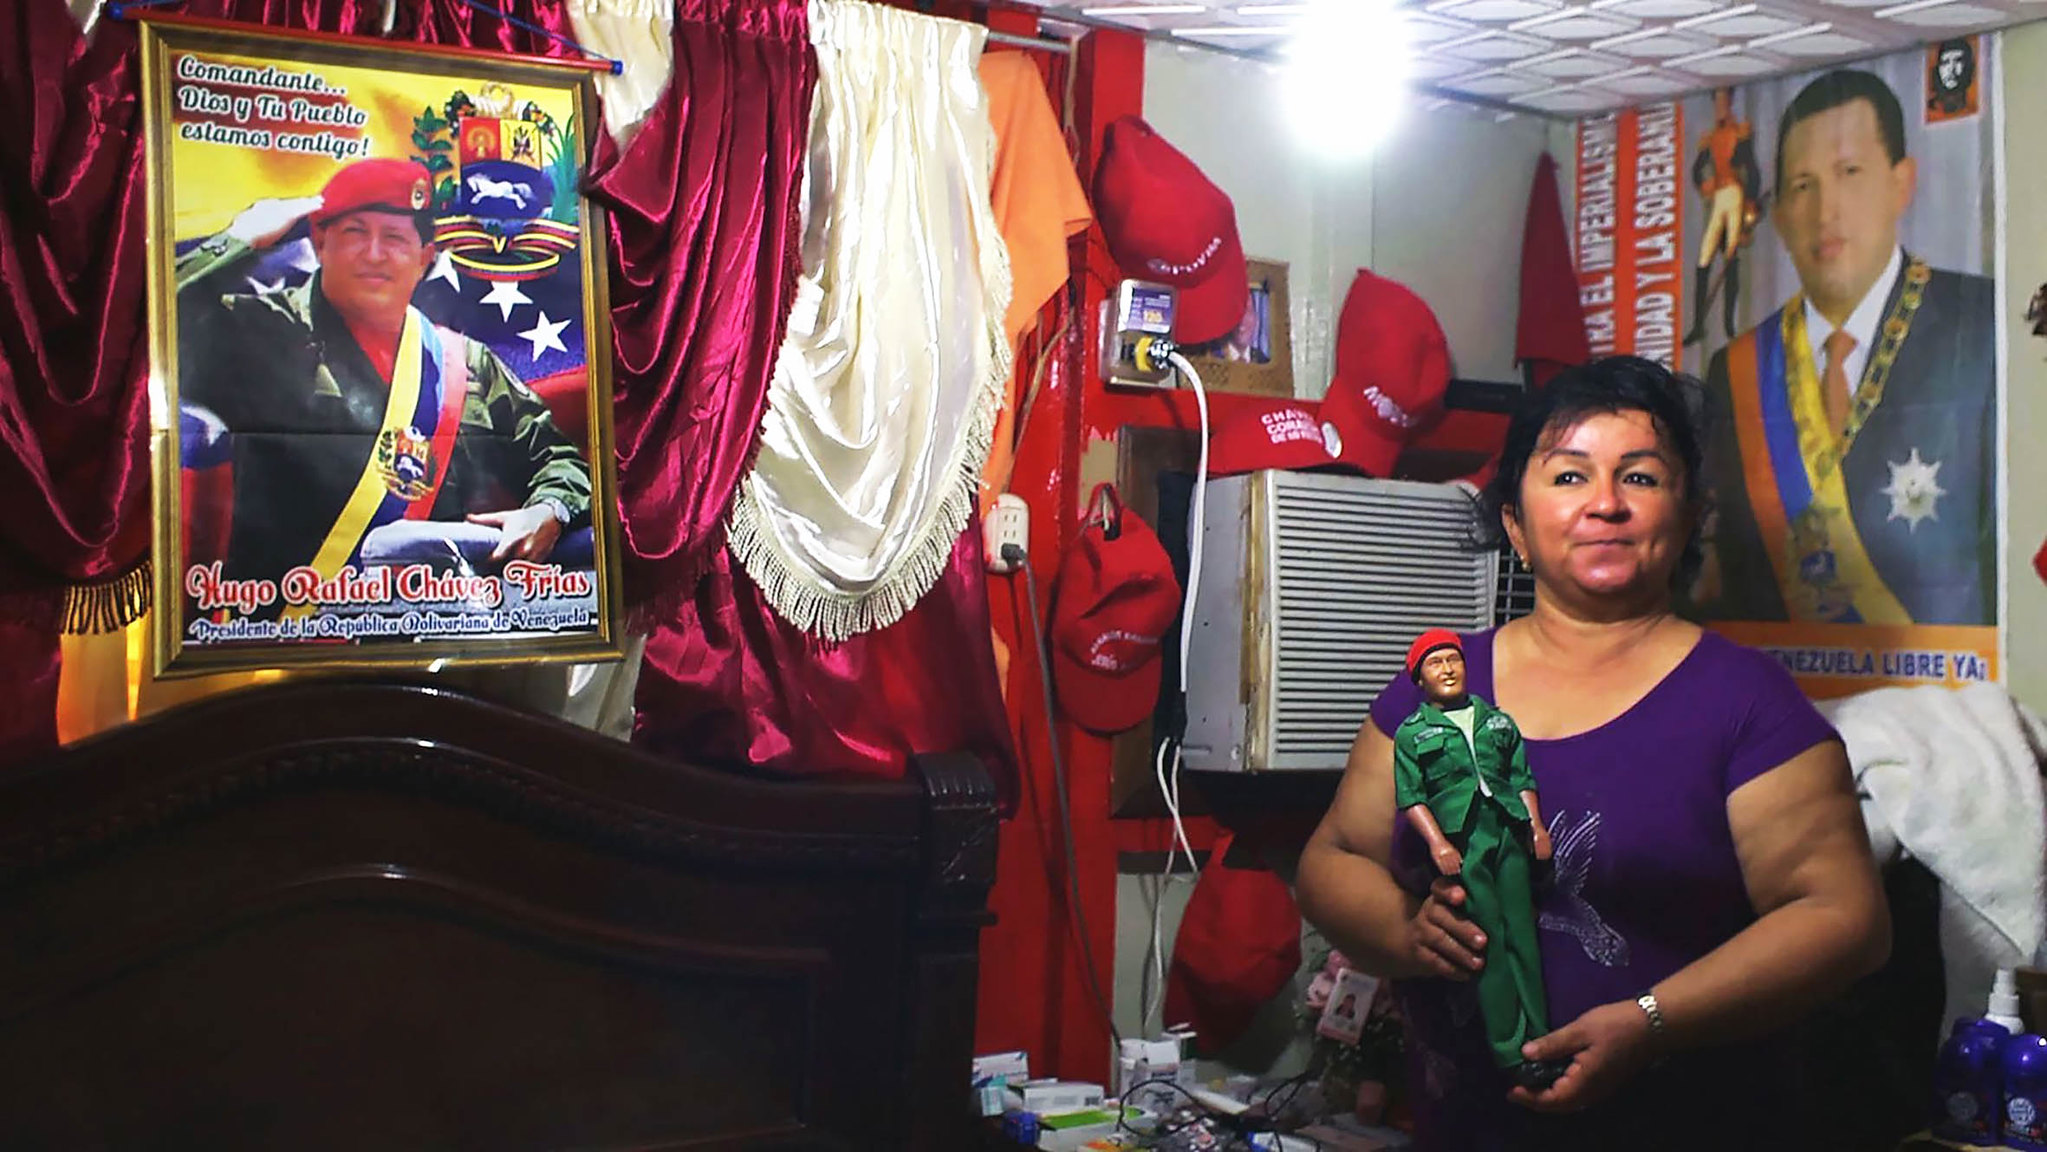 REVIEW: Documentary 'Once Upon a Time in Venezuela' Captures the Country's Post-Chavez Reality